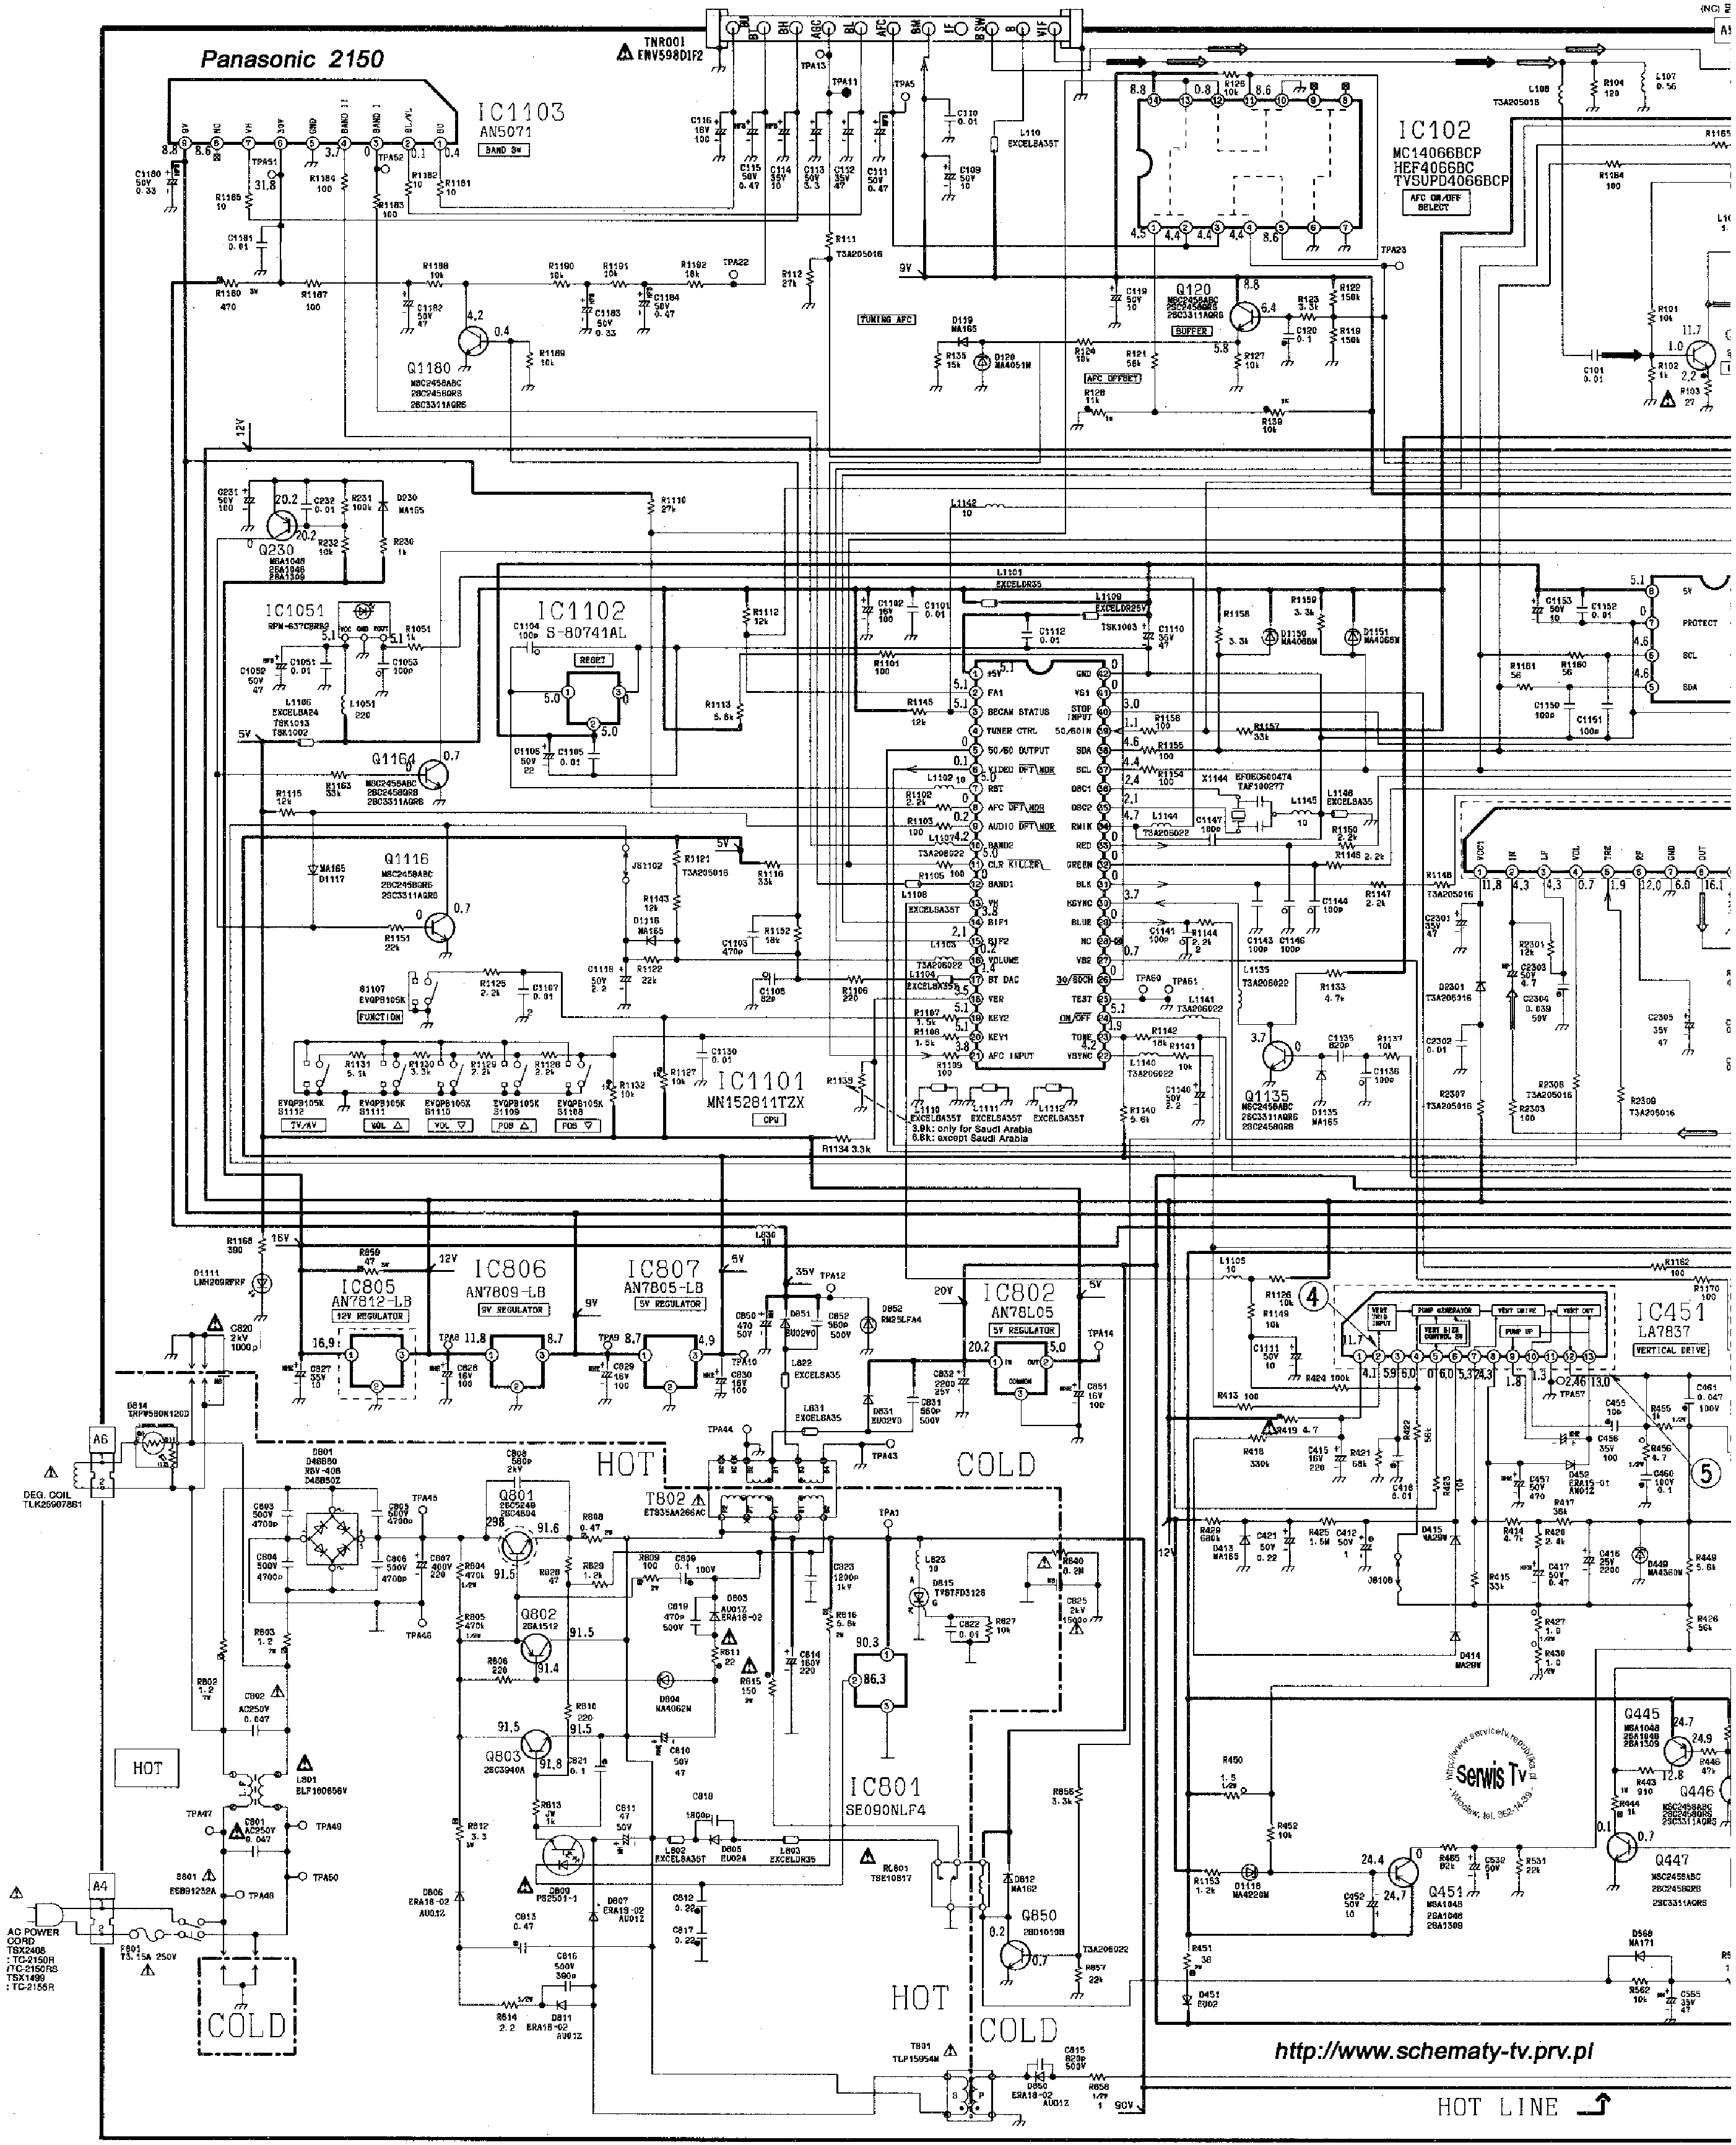 PANASONIC TC-2155 Service Manual download, schematics